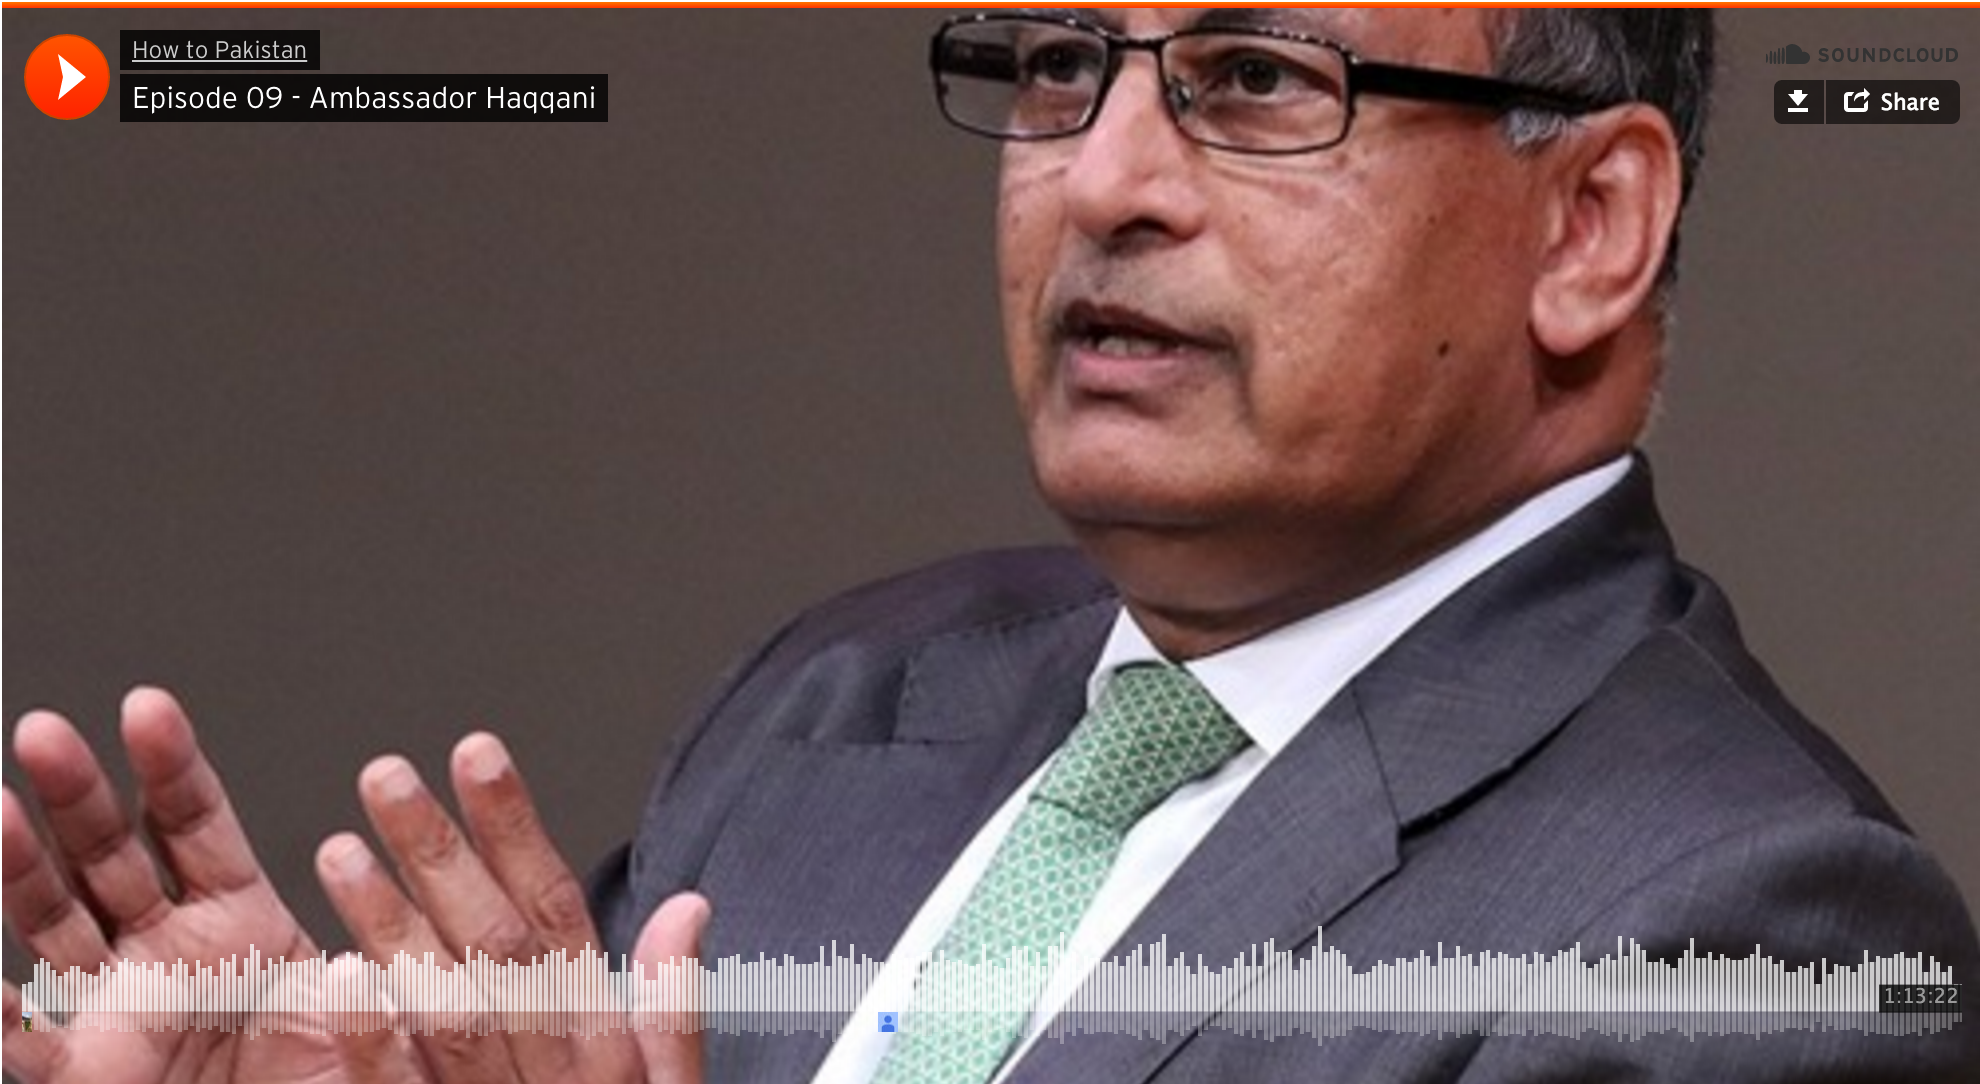 Ambassador Haqqani on the How to Pakistan Podcast, February 22, 2016